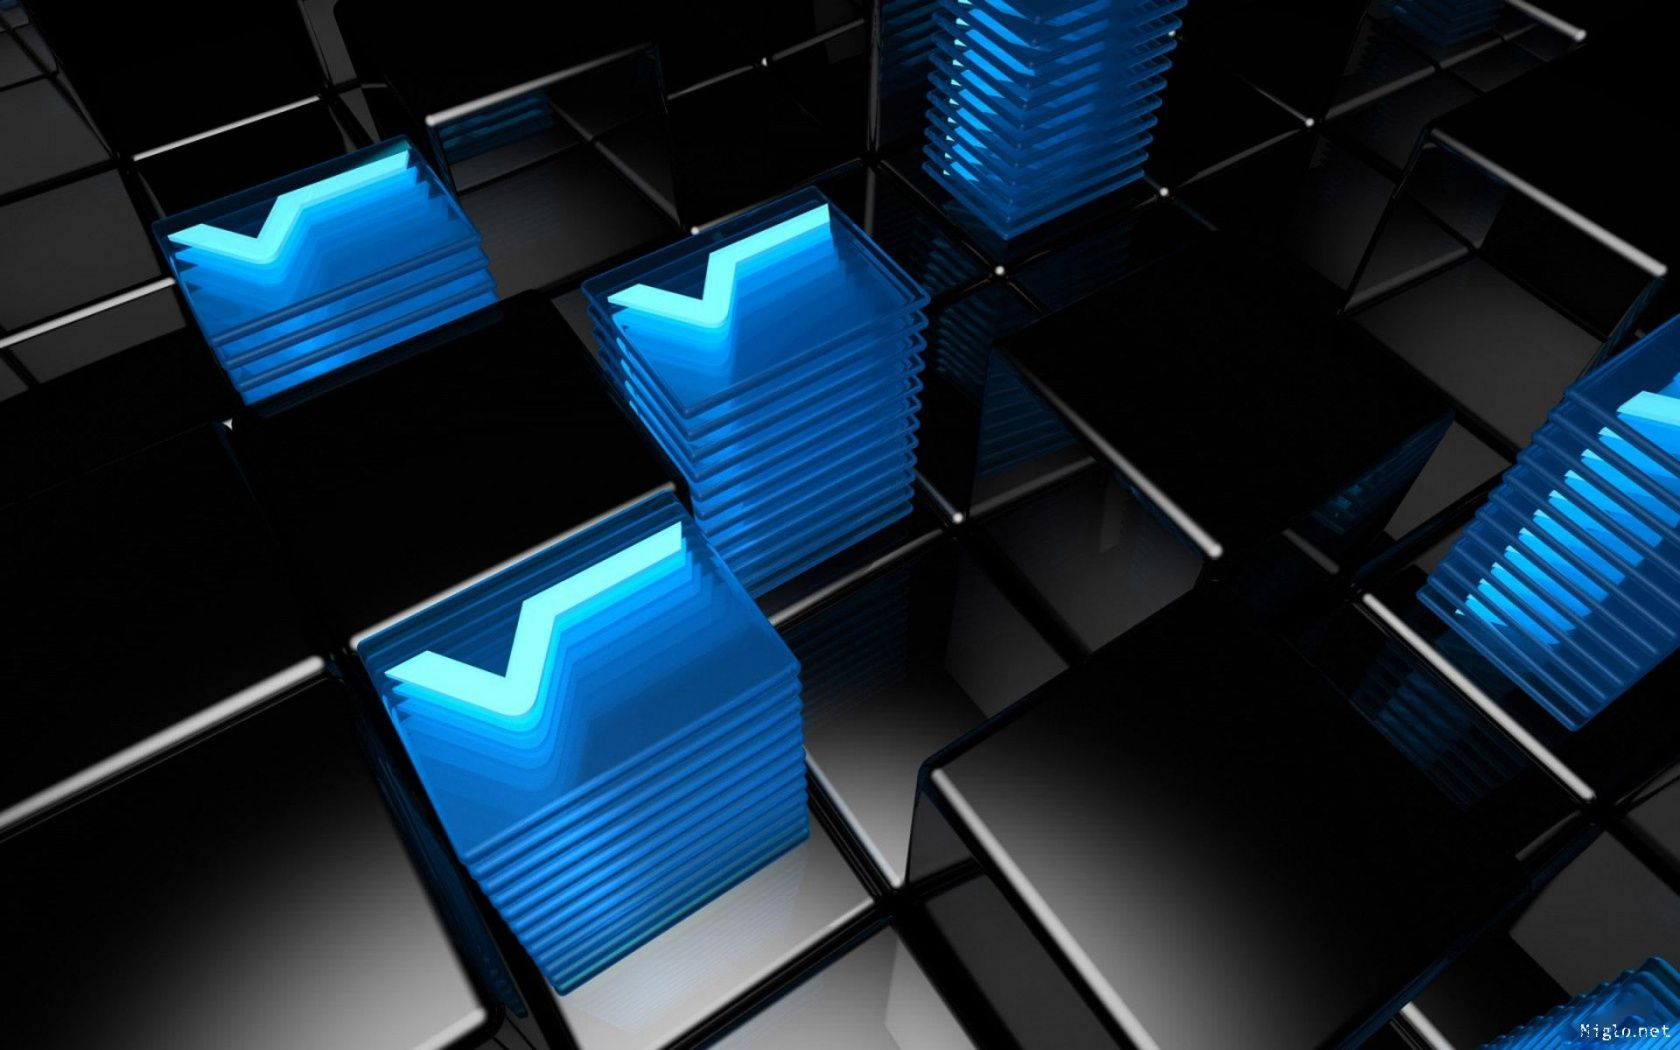 Basic Repository D Abstract Hd Wallpaper Awesome Pics